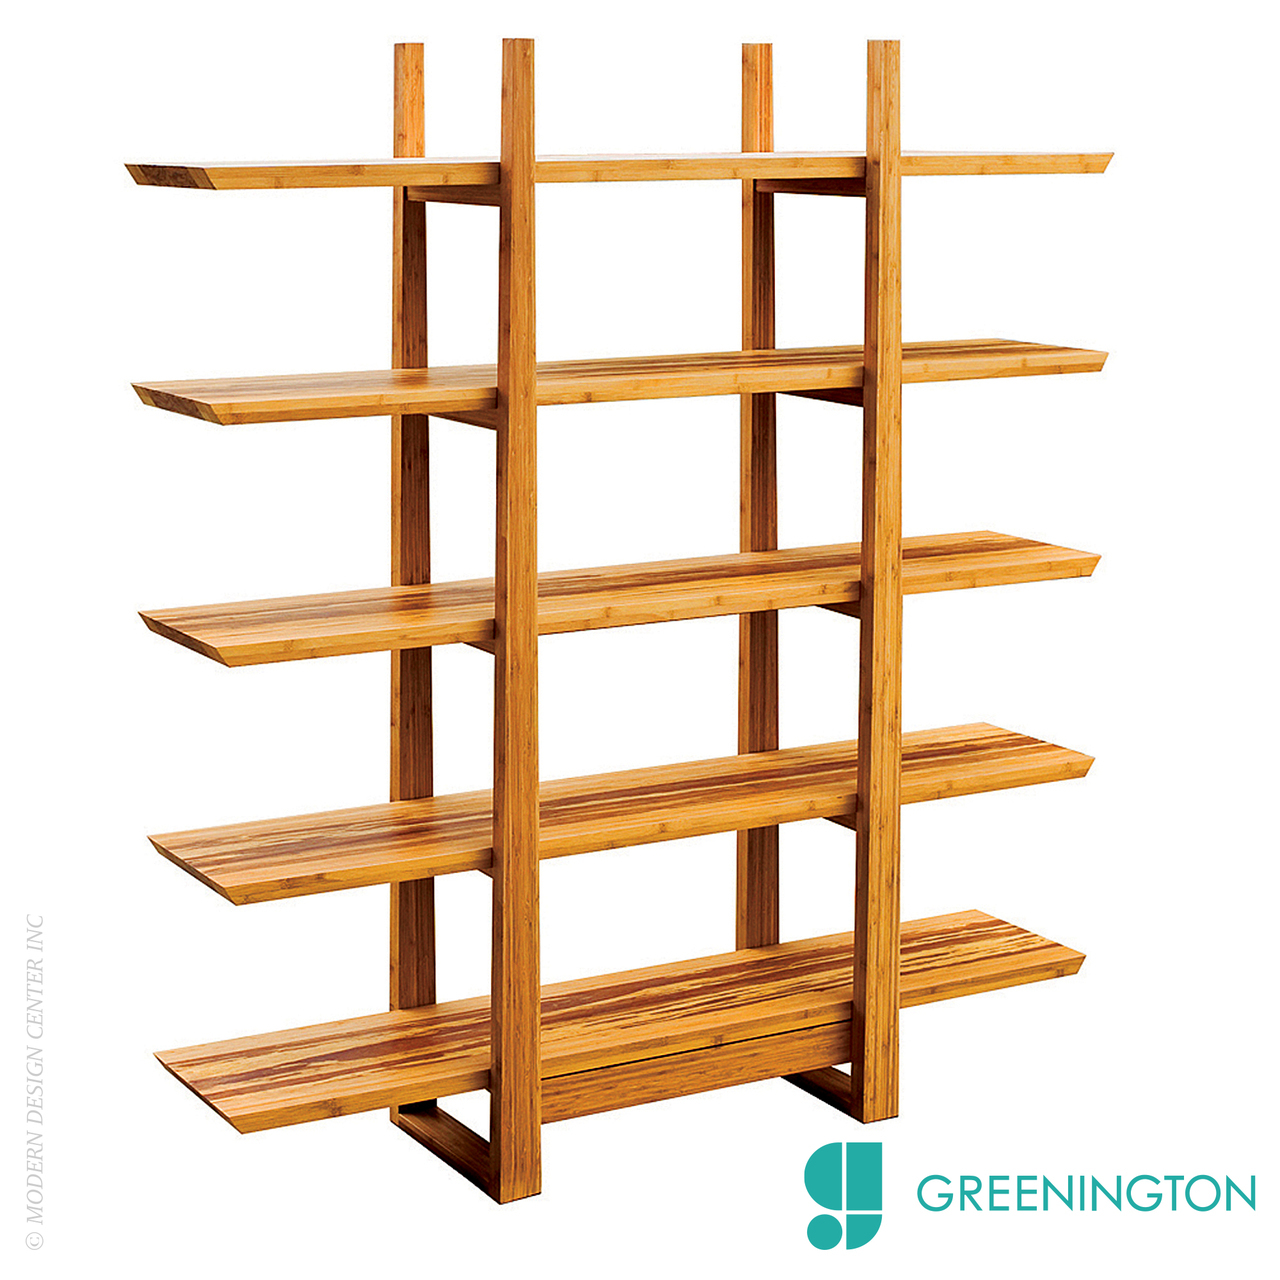 Magnolia Shelf | Greenington